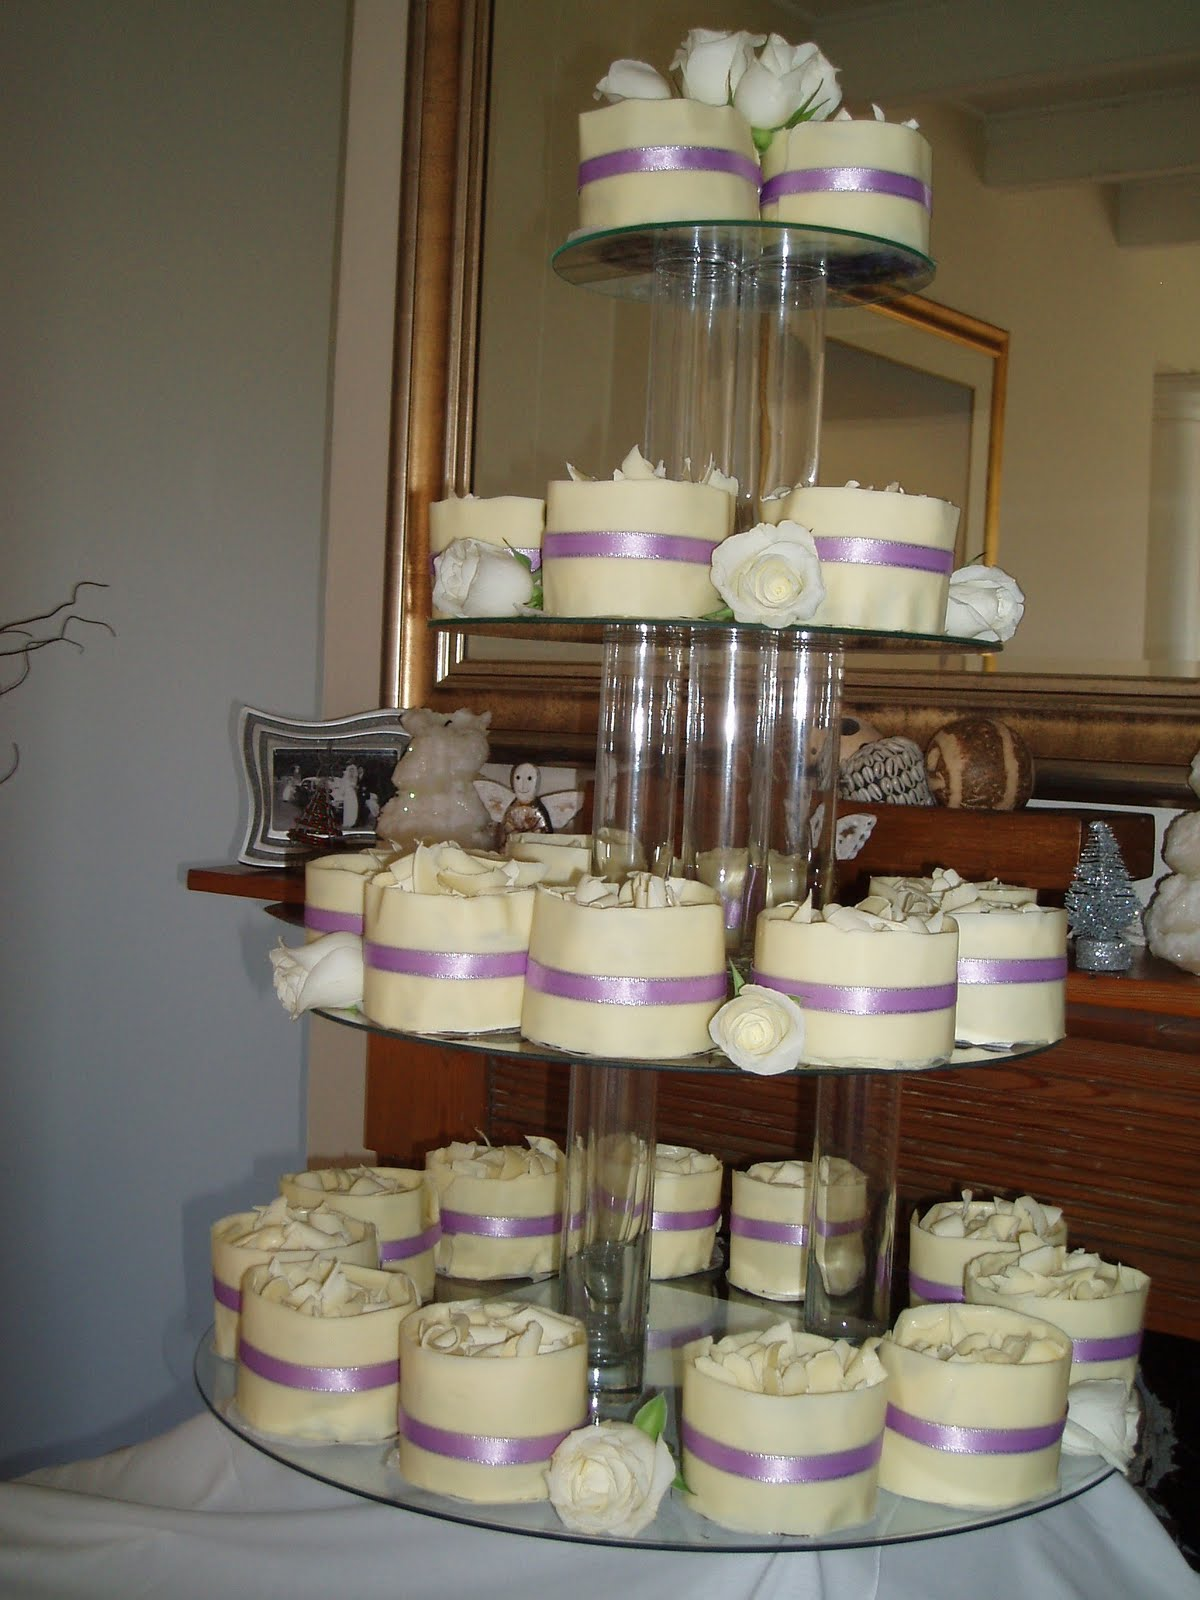 chocolate mousse wedding cakes south africa nelie s decadent cakes chantel amp s wedding cake 12732